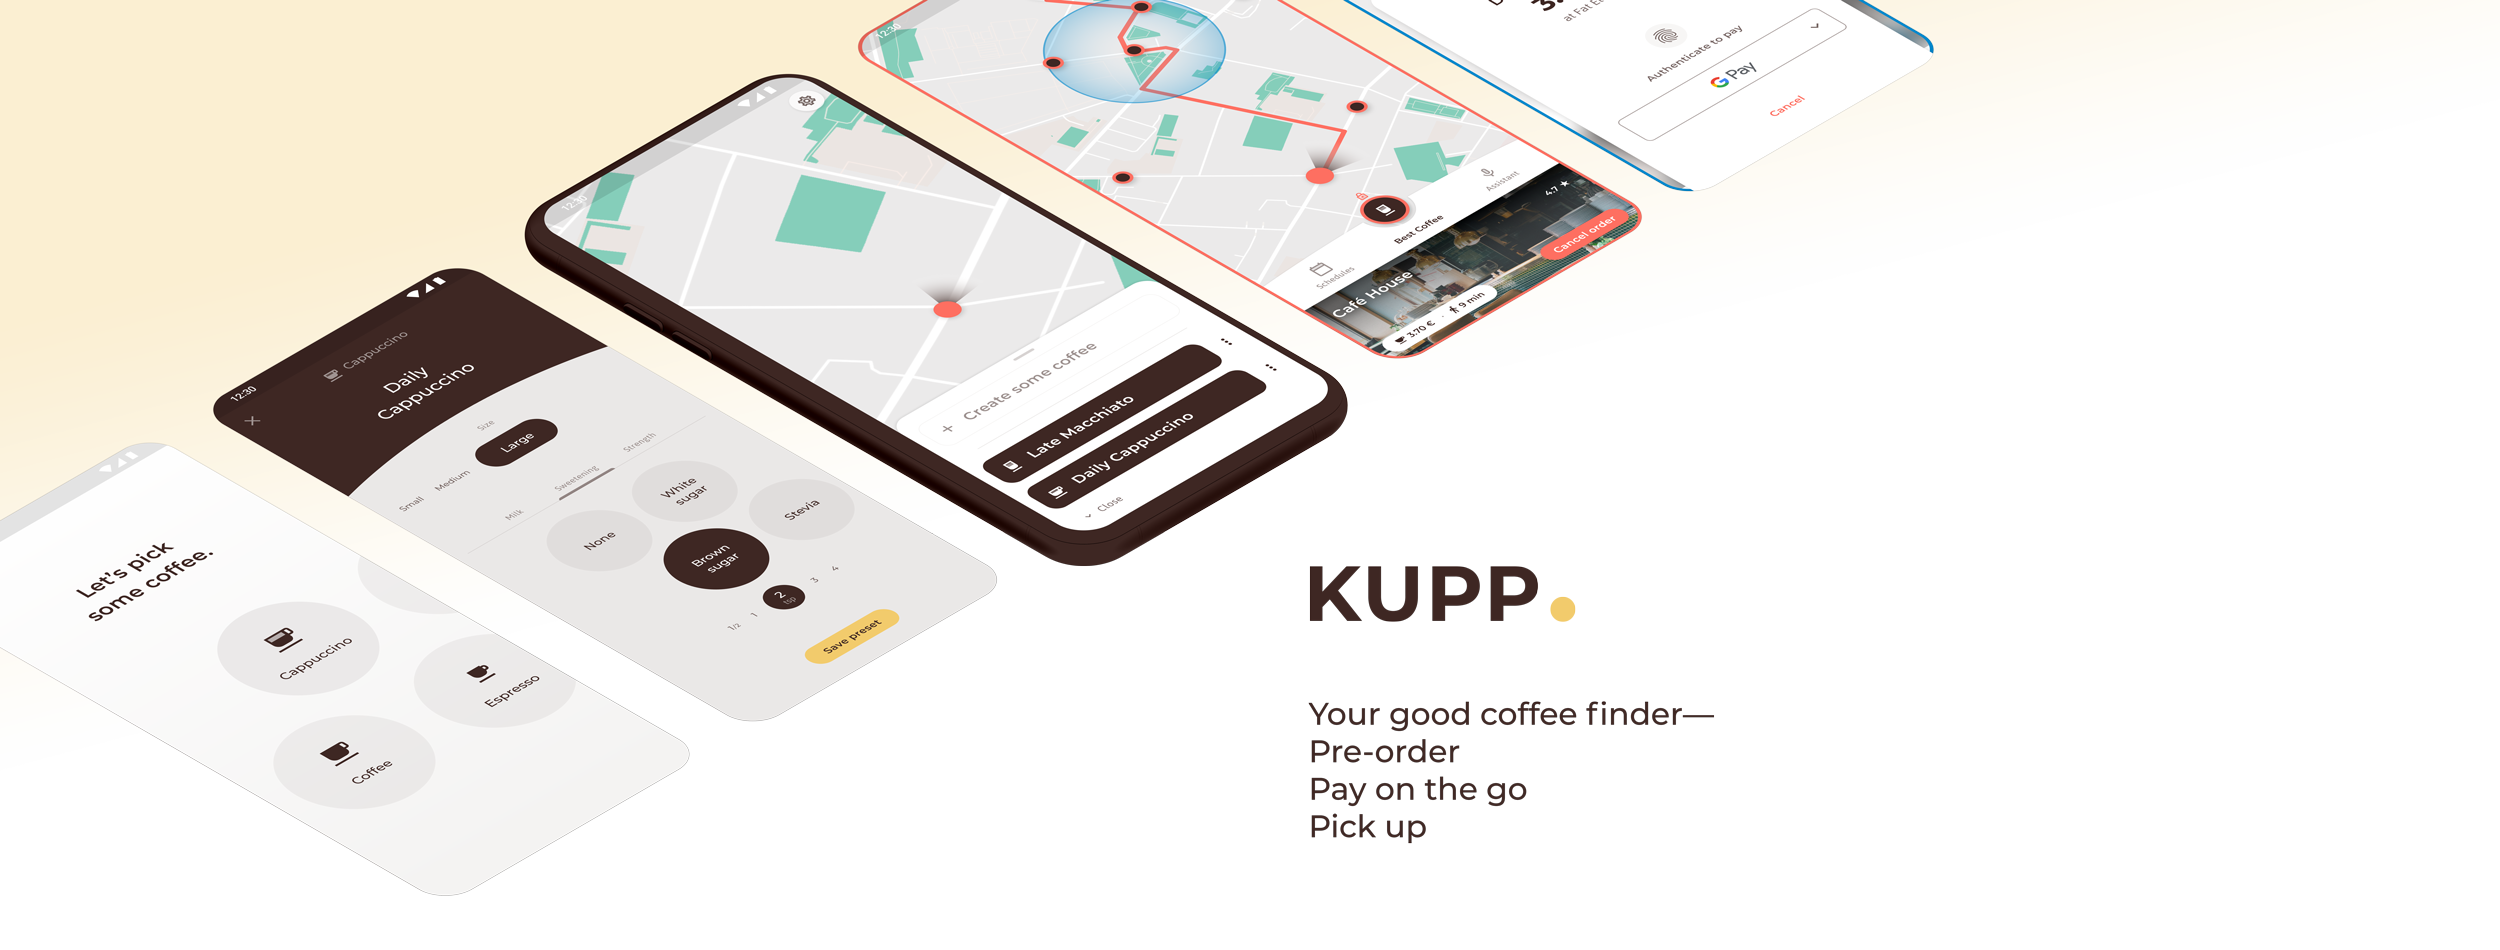 KUPP. Your good coffee finder— Pre-order, Pay on the go, Pick up